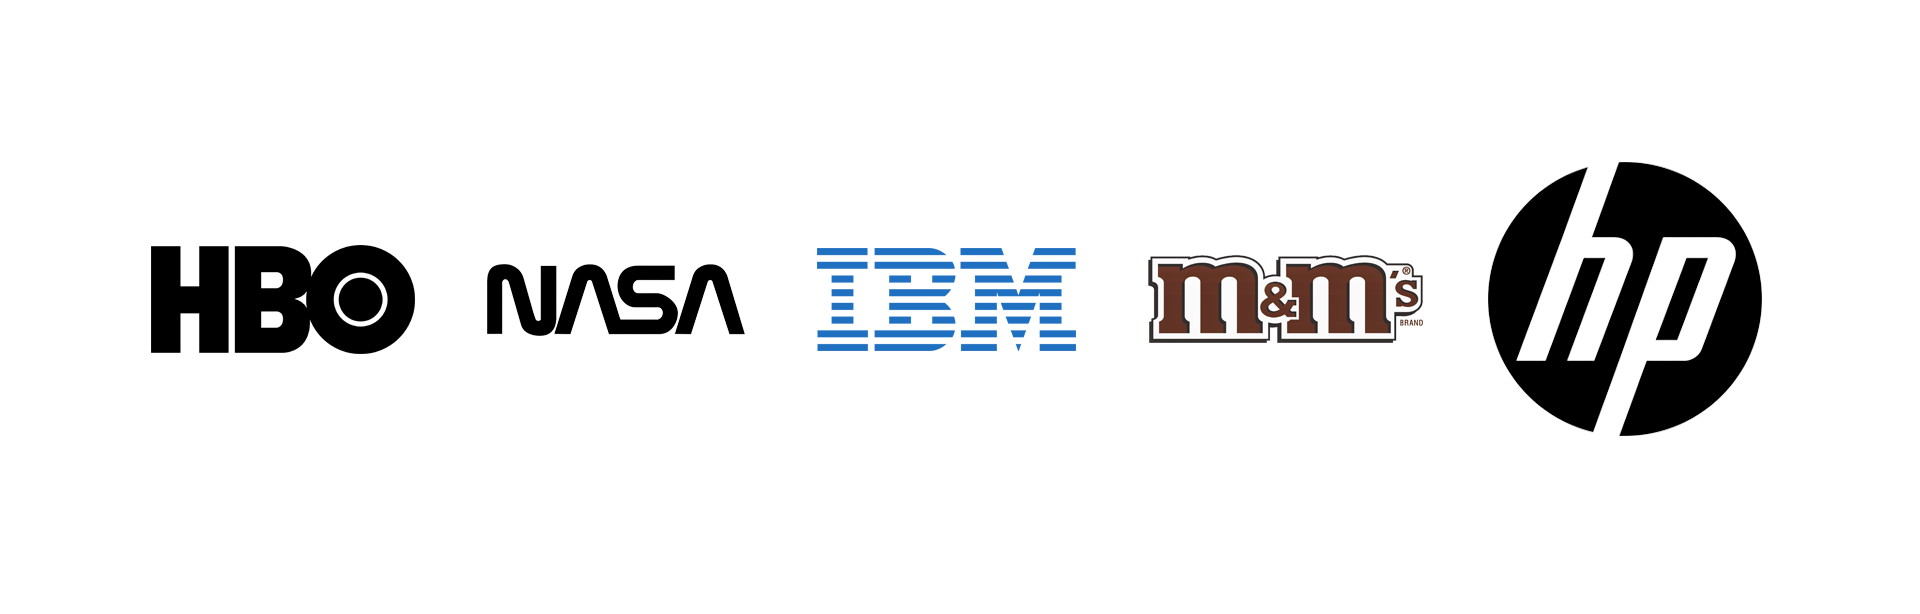 Lettermark, HBO, NASA, IBM, M&M's, HP